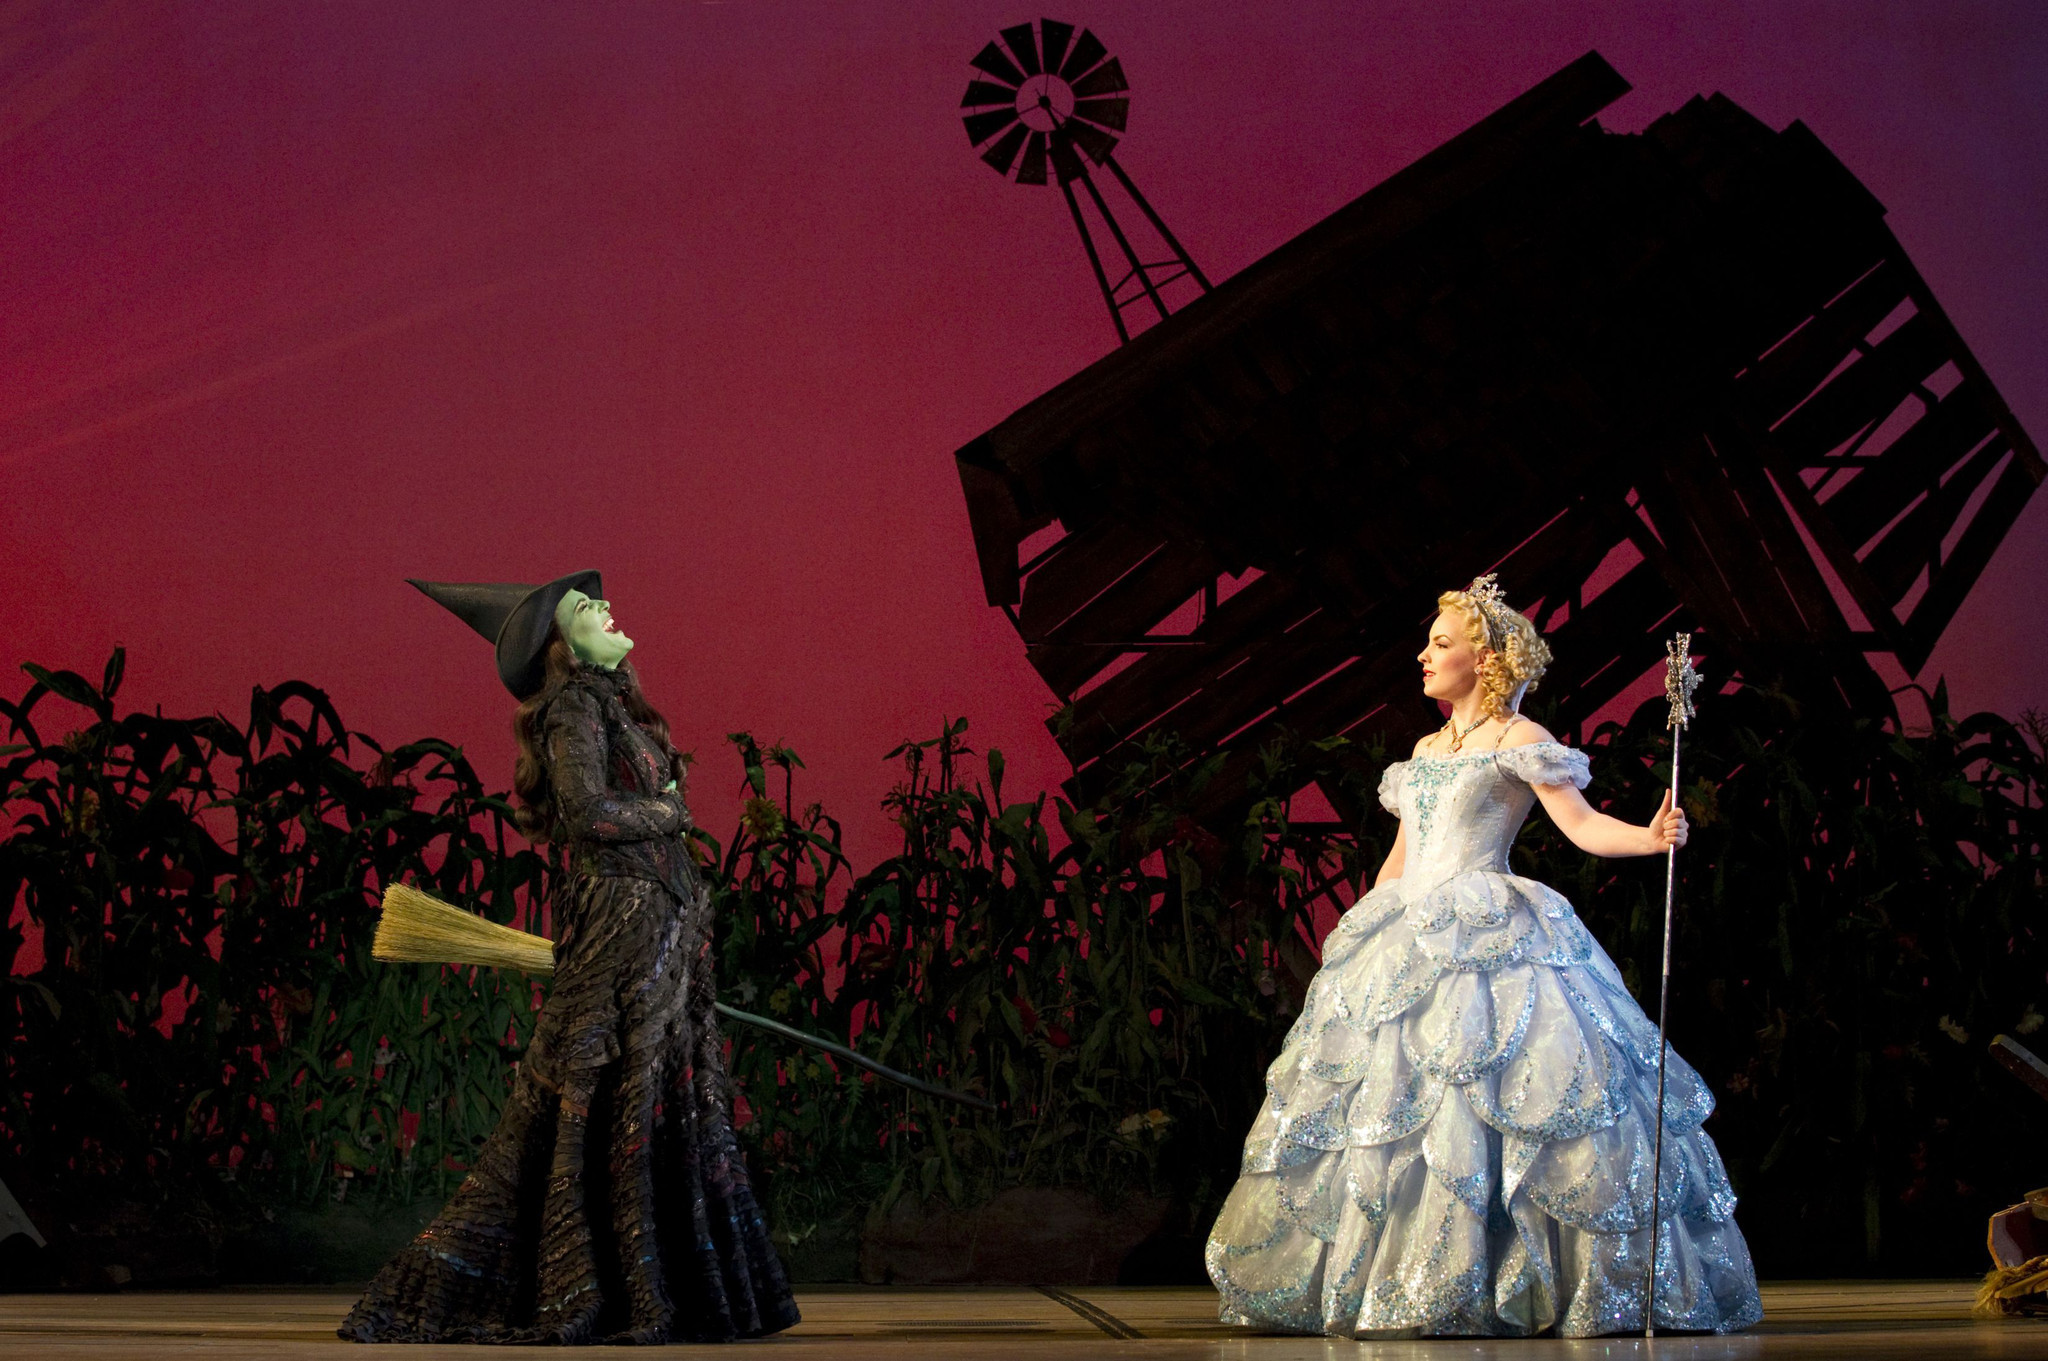 Behind the curtain wizard of oz - Stephen Daldry Directed Wicked Film Could Land In 2016 Producer Says